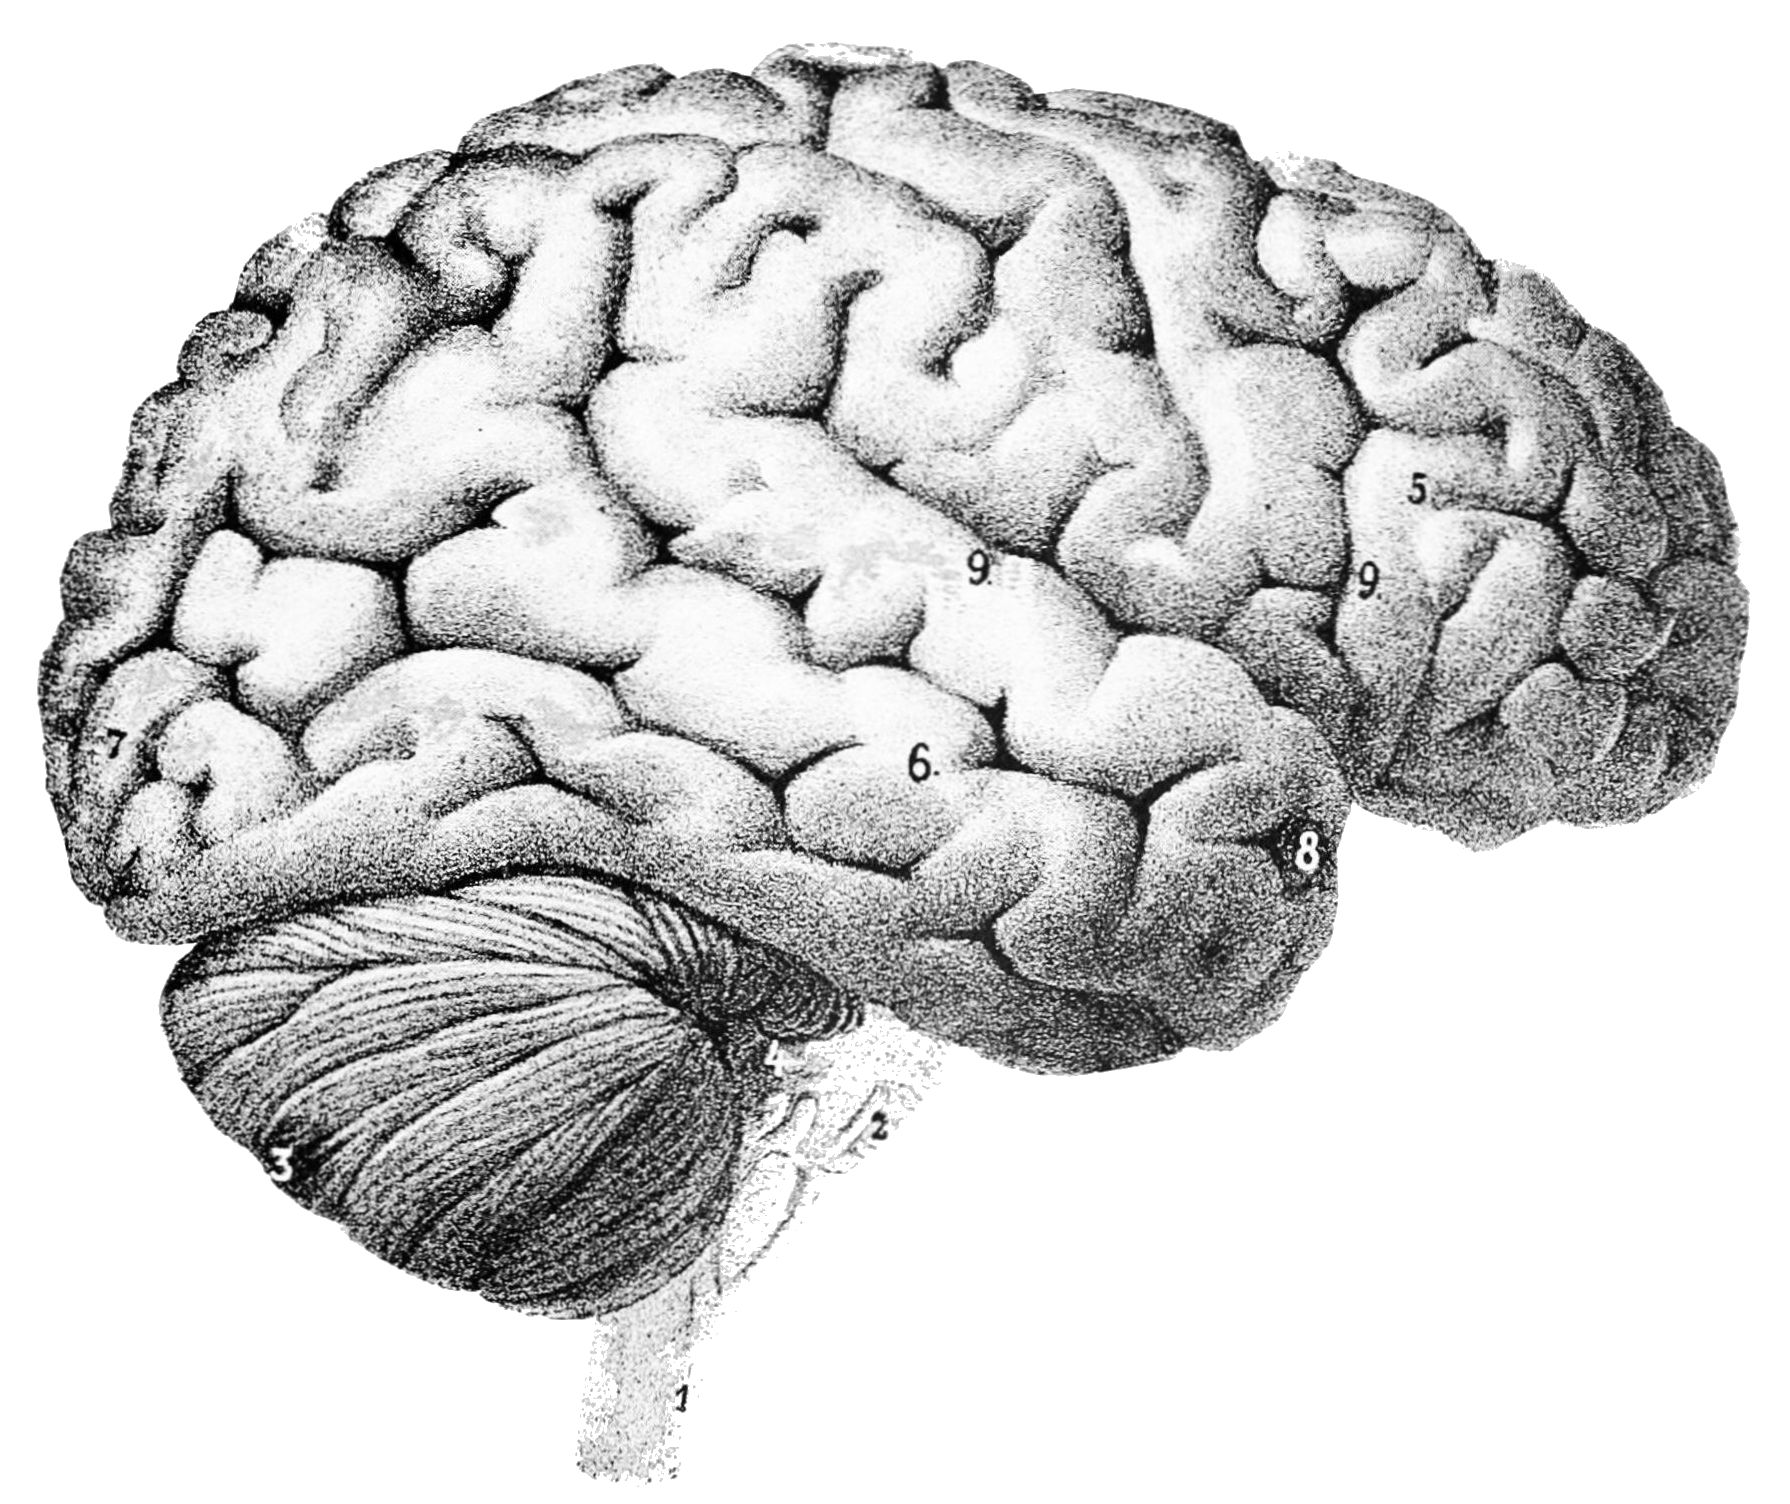 PSM_V46_D167_Outer_surface_of_the_human_brain.jpg (1790×1504)